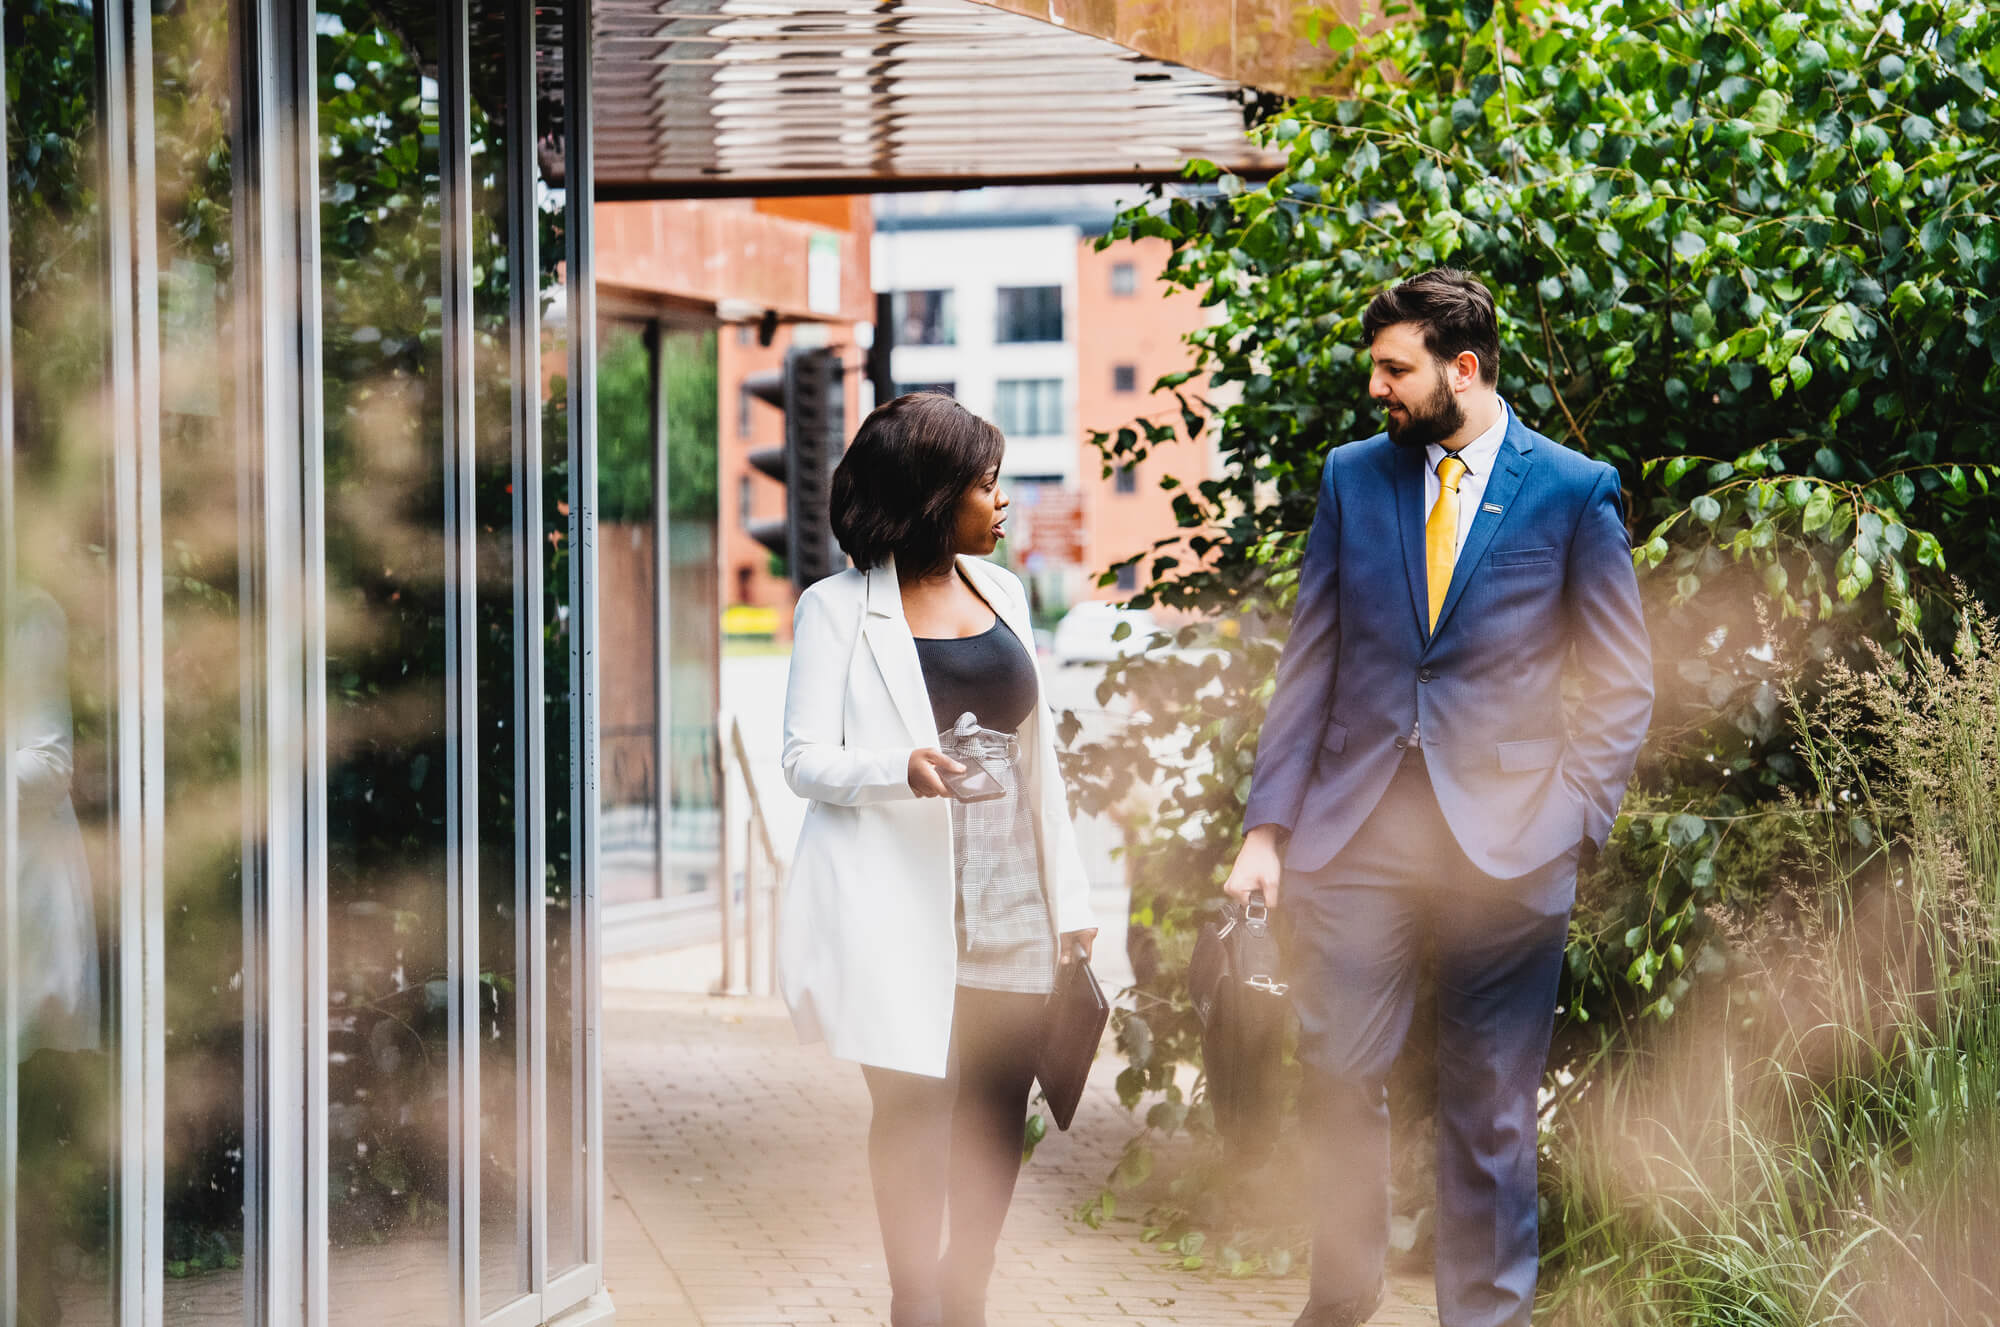 A female and Male student dressed in business wear, walking and talking outside a university building